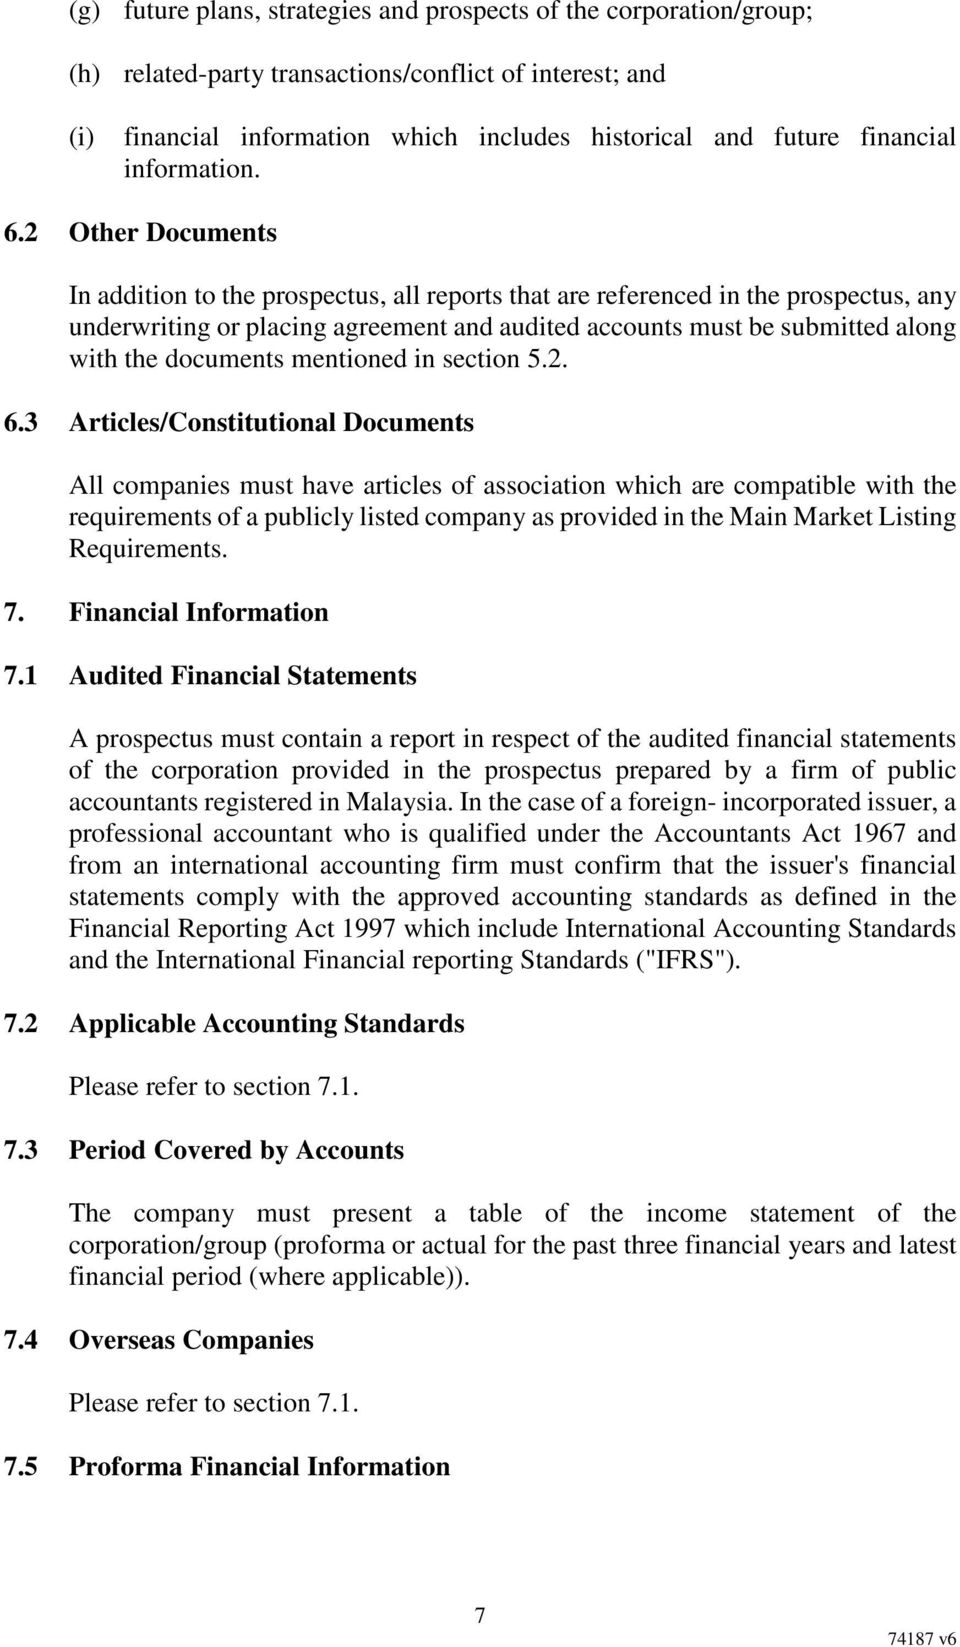 2 Other Documents In addition to the prospectus, all reports that are referenced in the prospectus, any underwriting or placing agreement and audited accounts must be submitted along with the